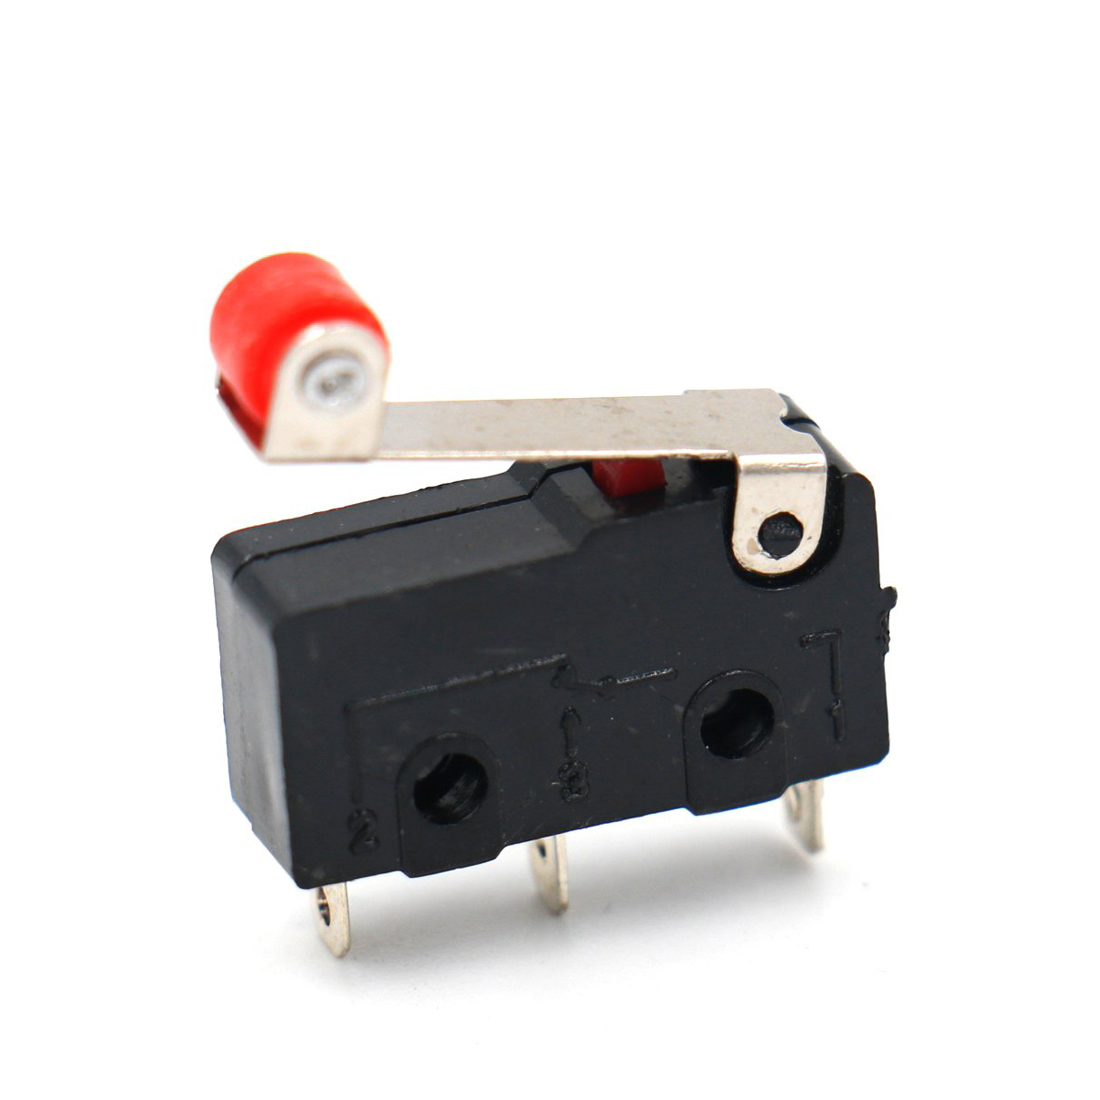 micro-limit-switch-lever-amp-roller-blure74-1901-02-F1466207_1